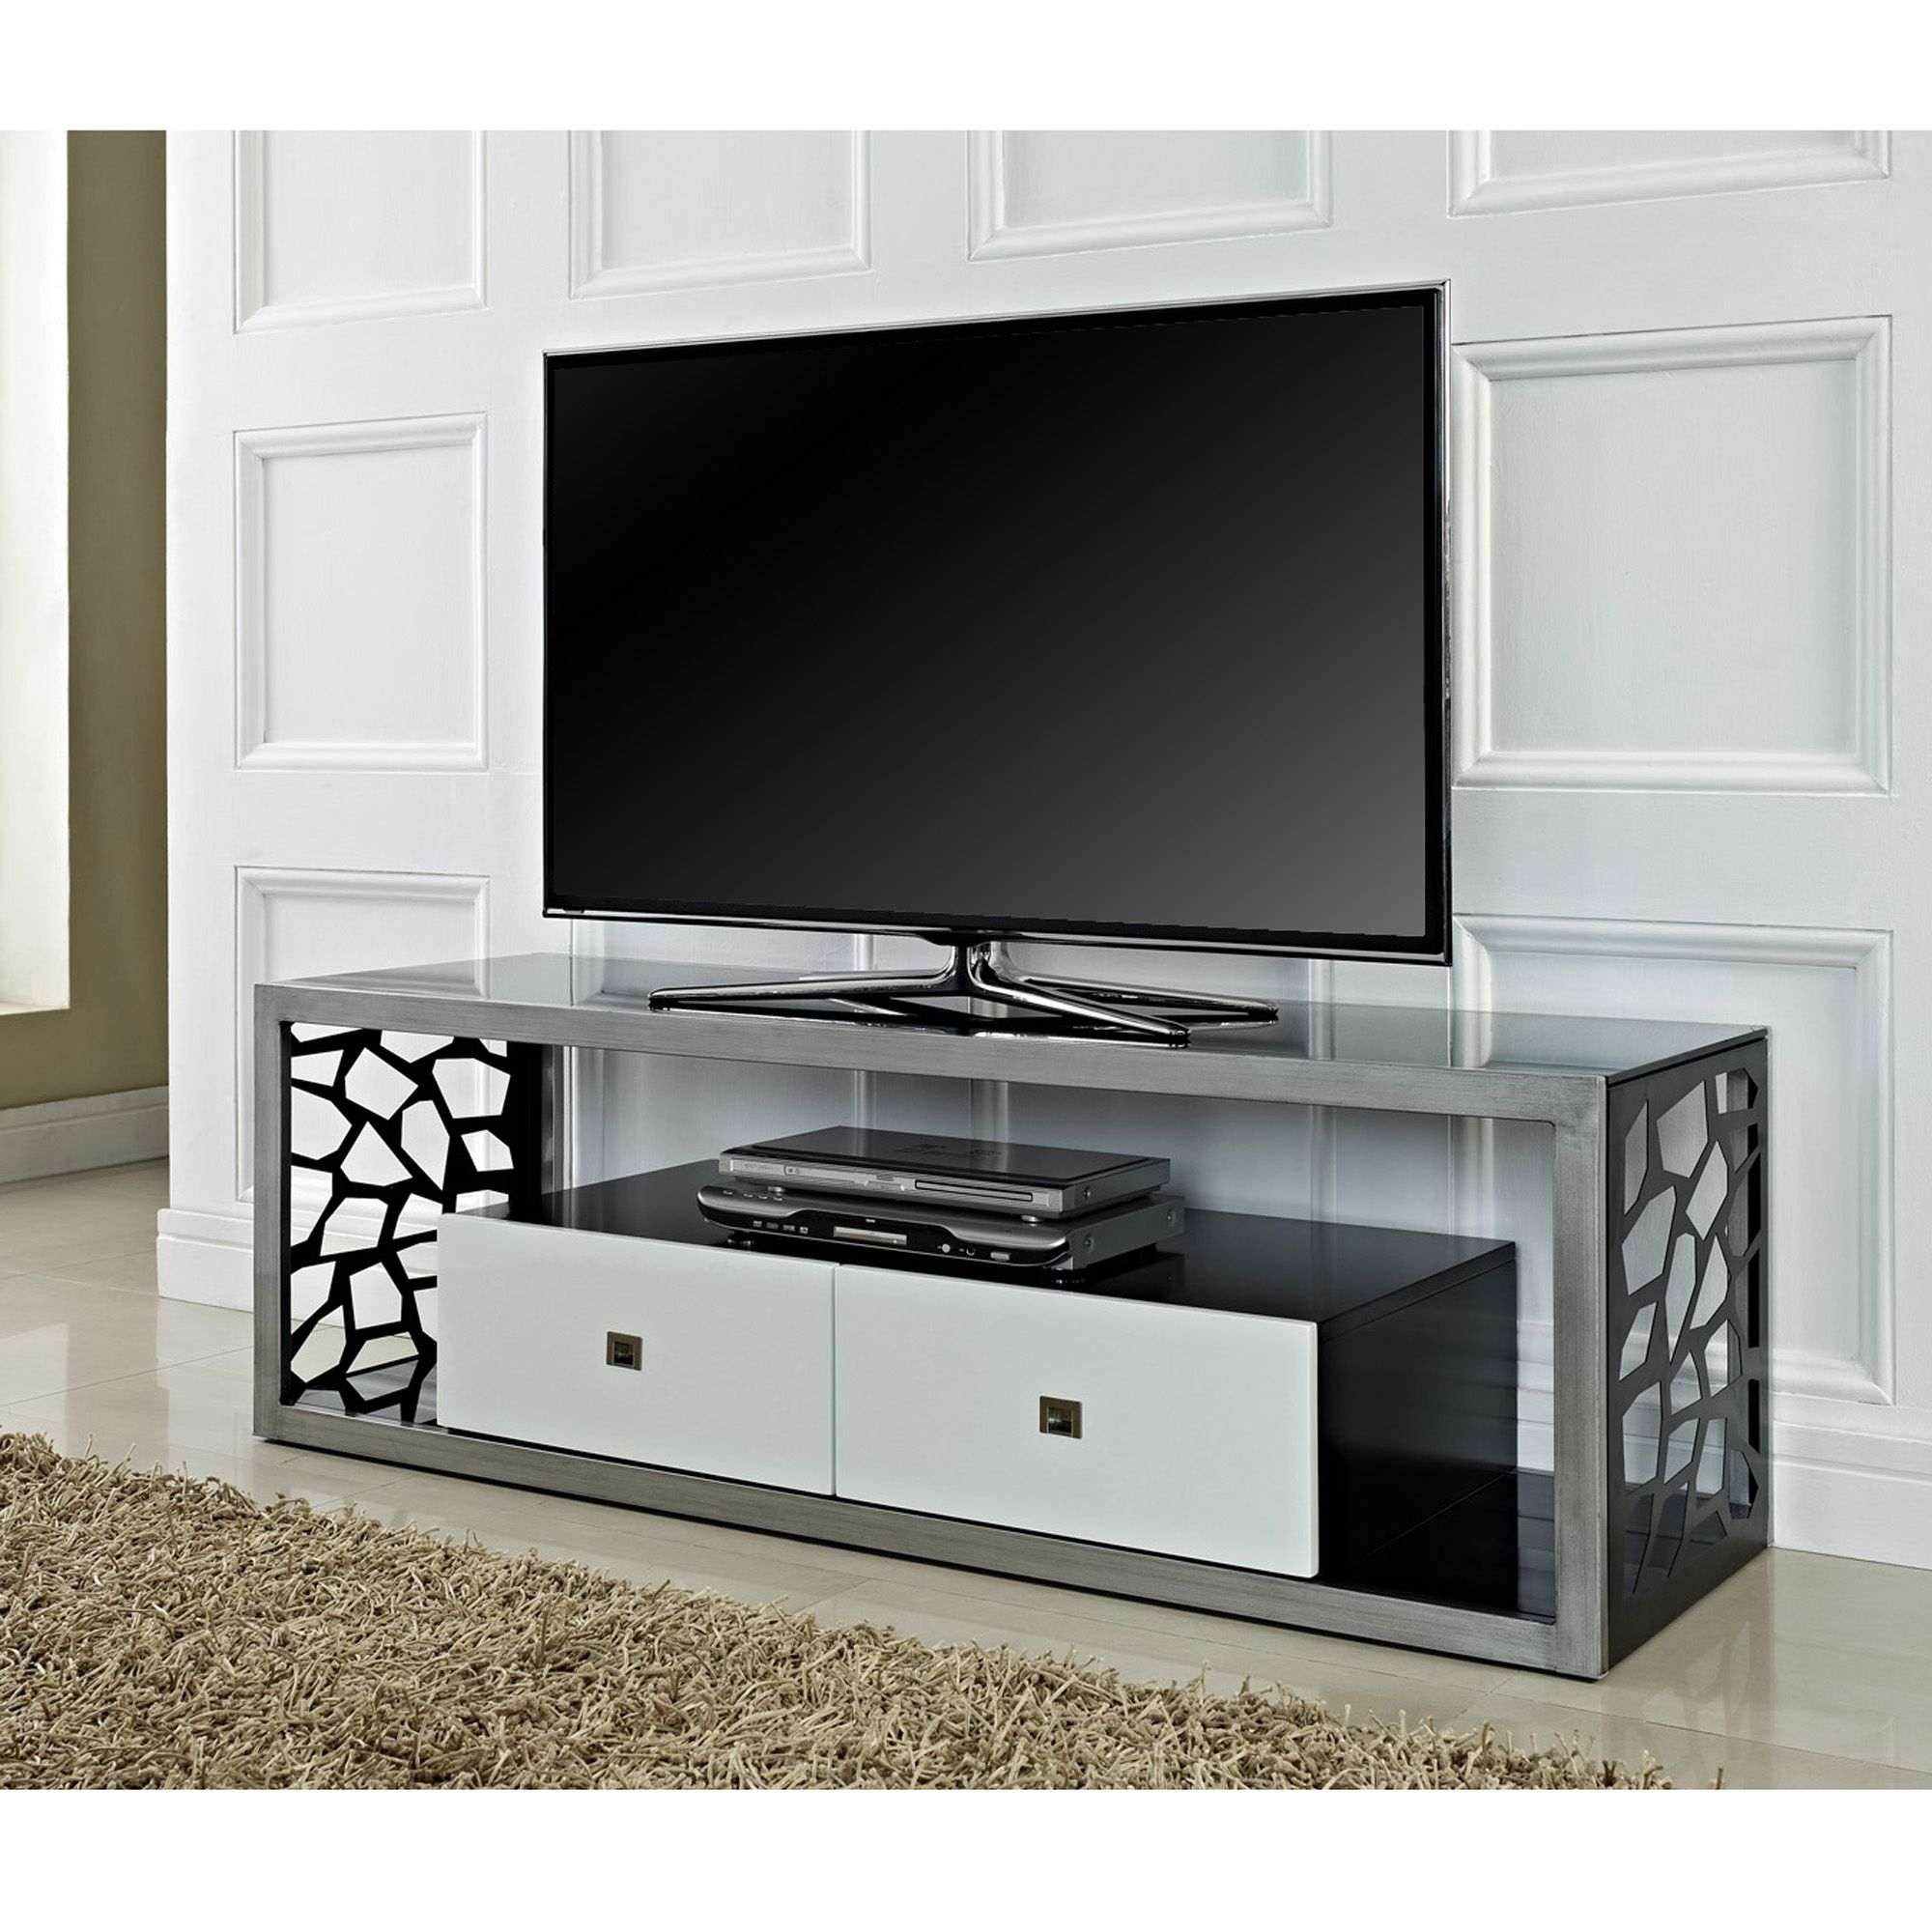 "Beautiful 60"" Mosaic Tv Stand, Brushed Silver Frame With White With Regard To Rowan 45 Inch Tv Stands (View 5 of 20)"